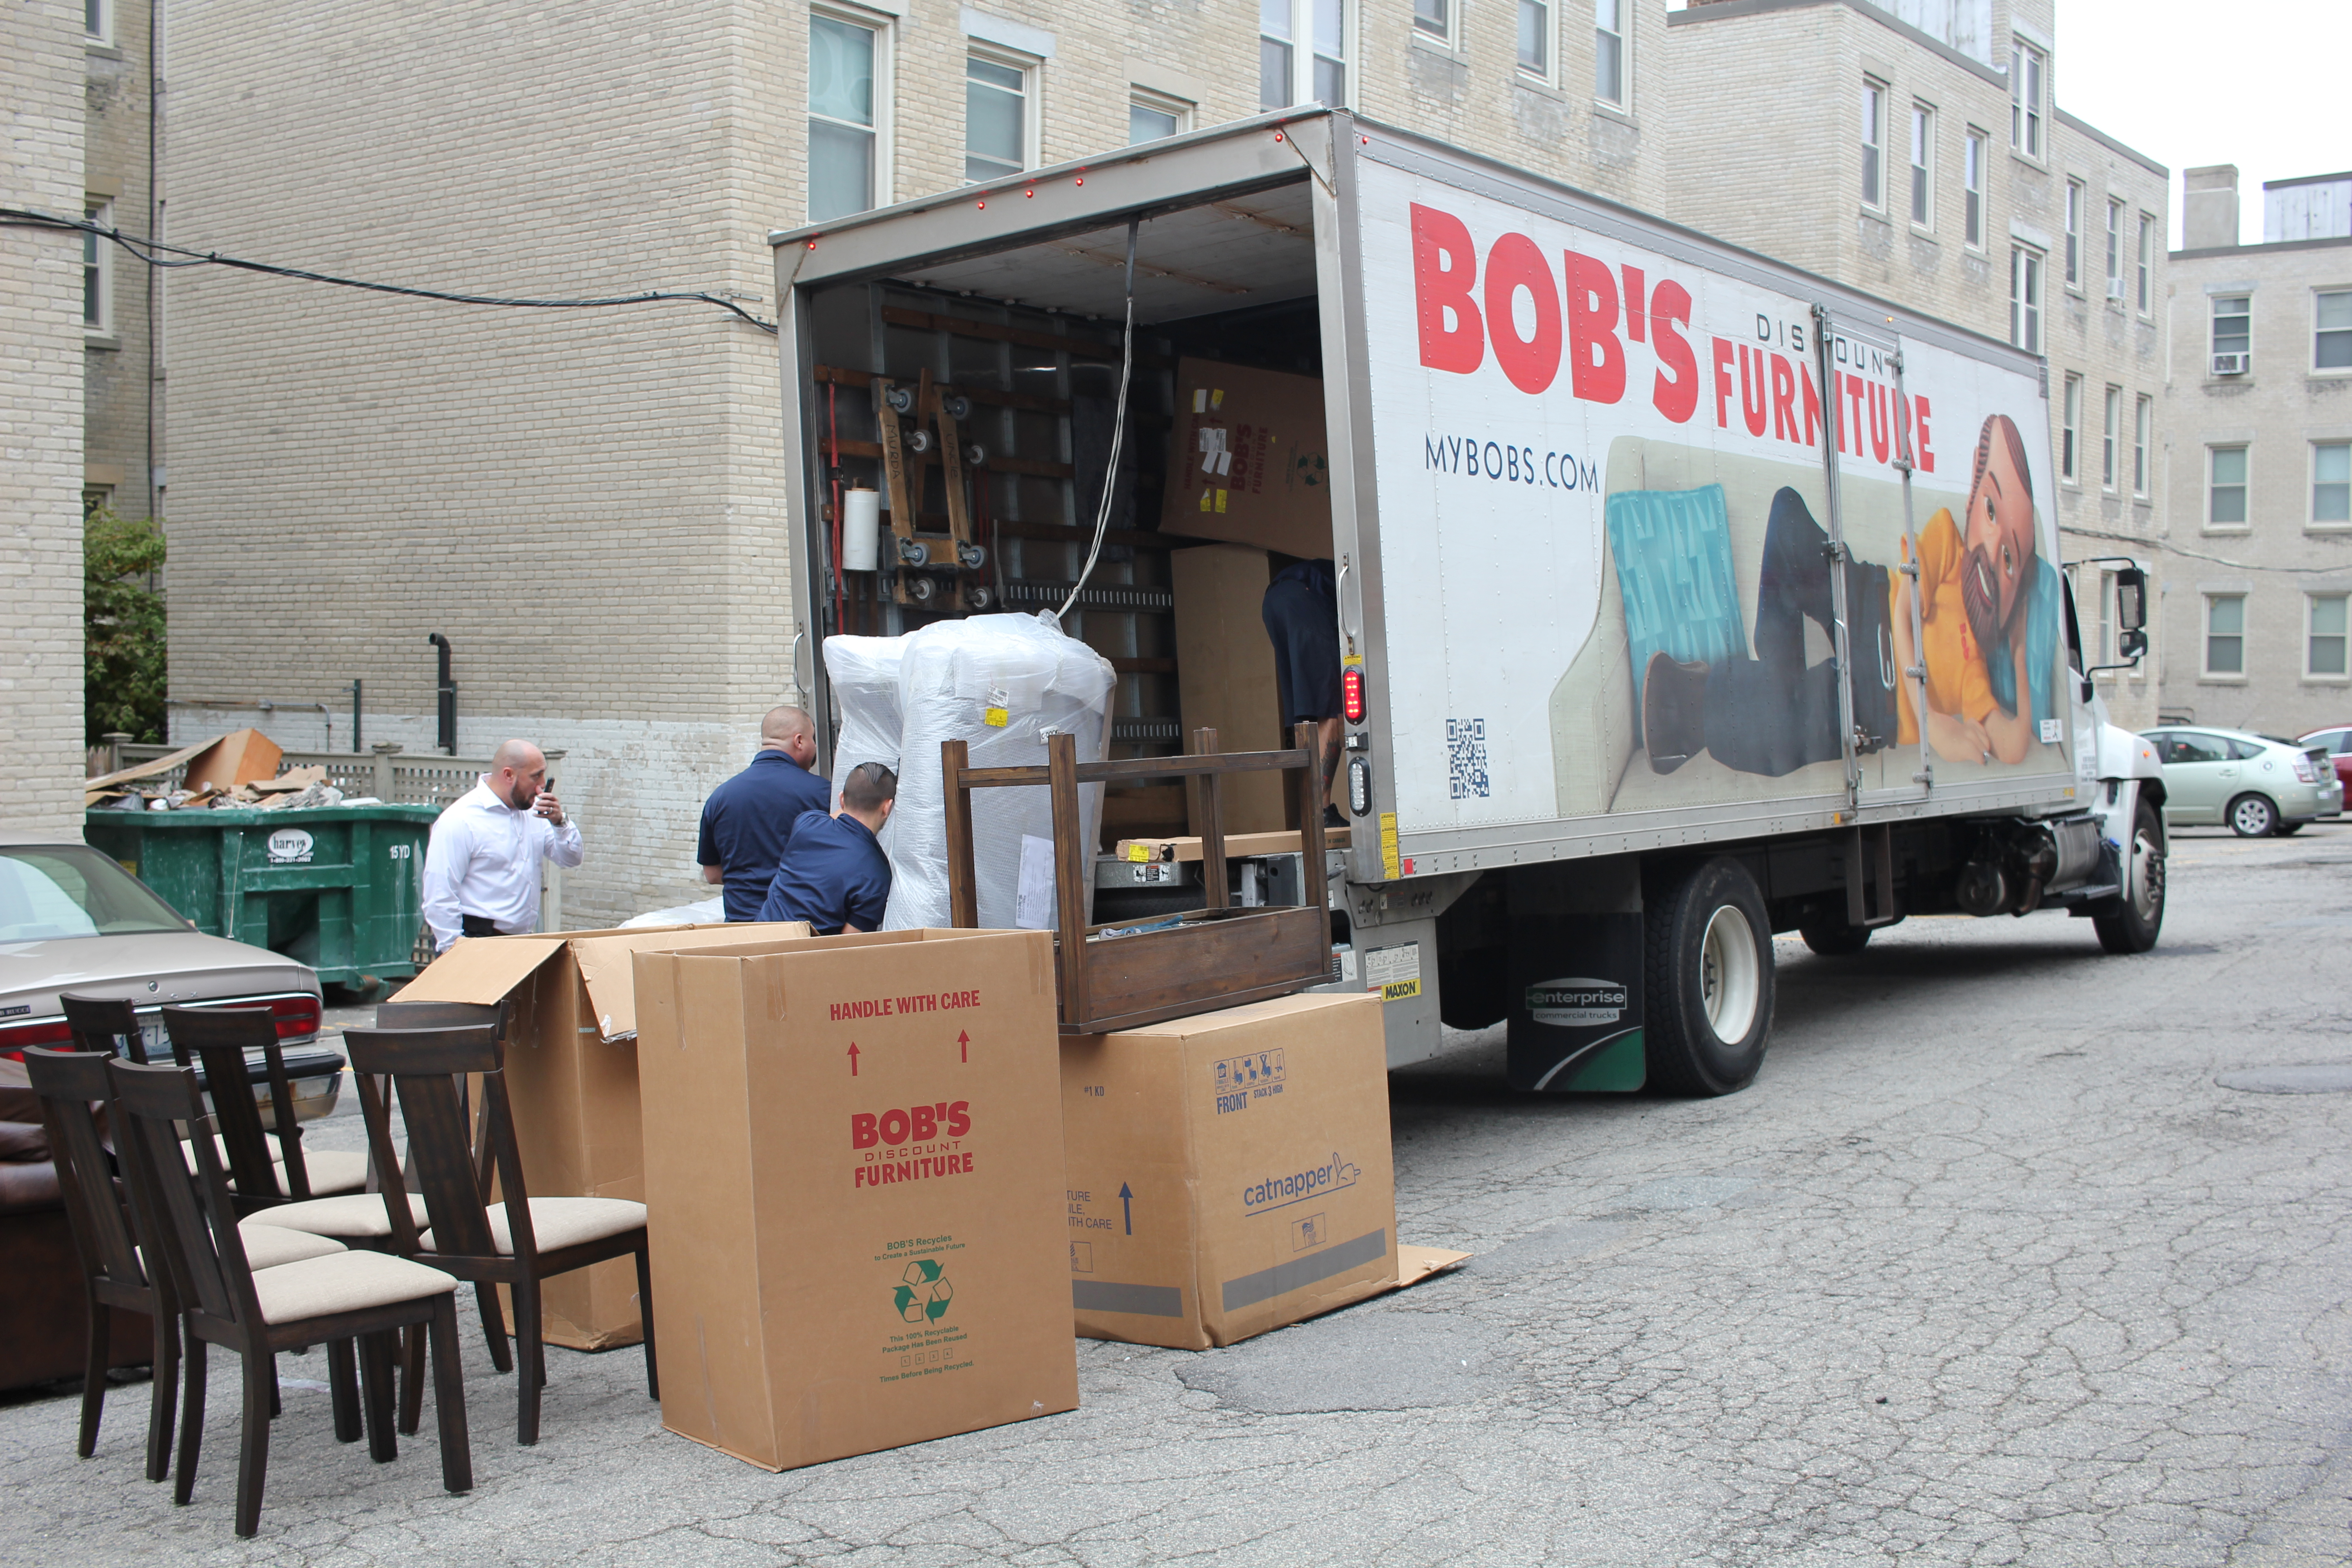 Bob S Discount Furniture Donates To Those In Need